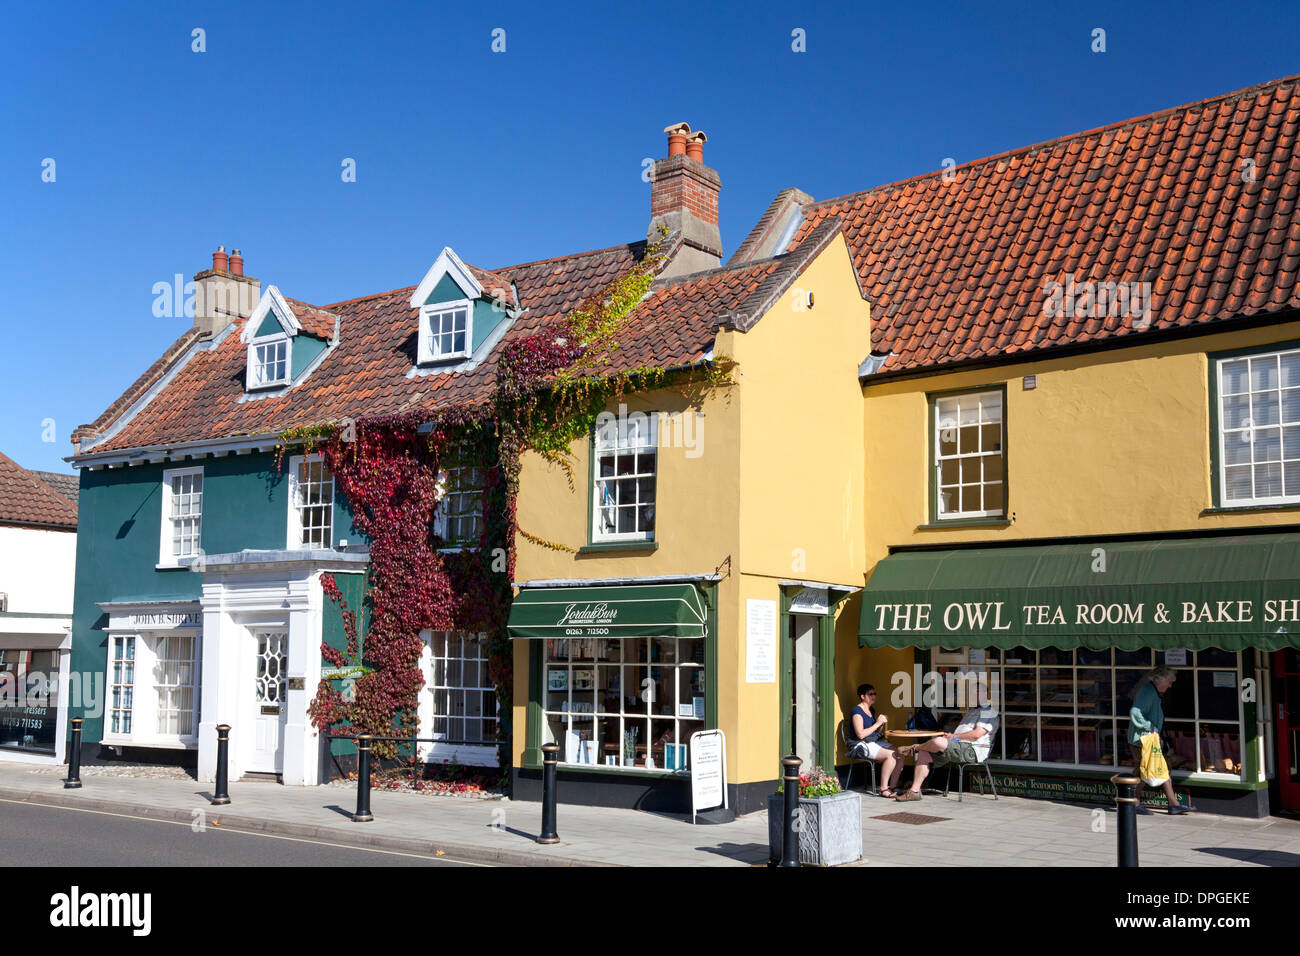 Georgian buildings and tea room in town centre, Holt, Norfolk - Stock Image